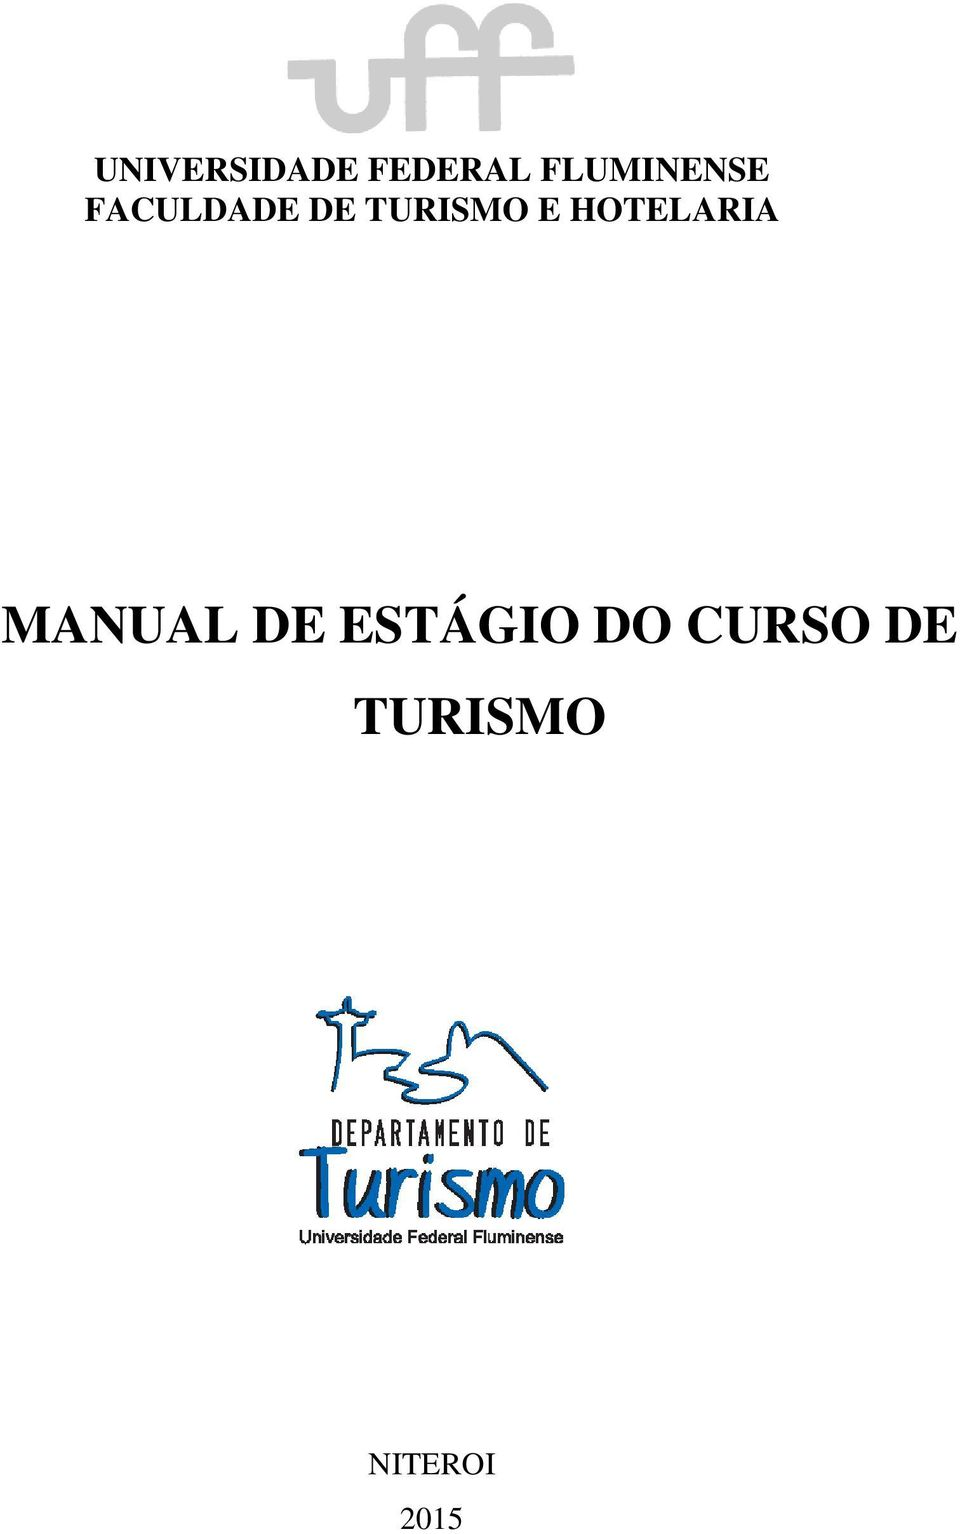 TURISMO E HOTELARIA MANUAL